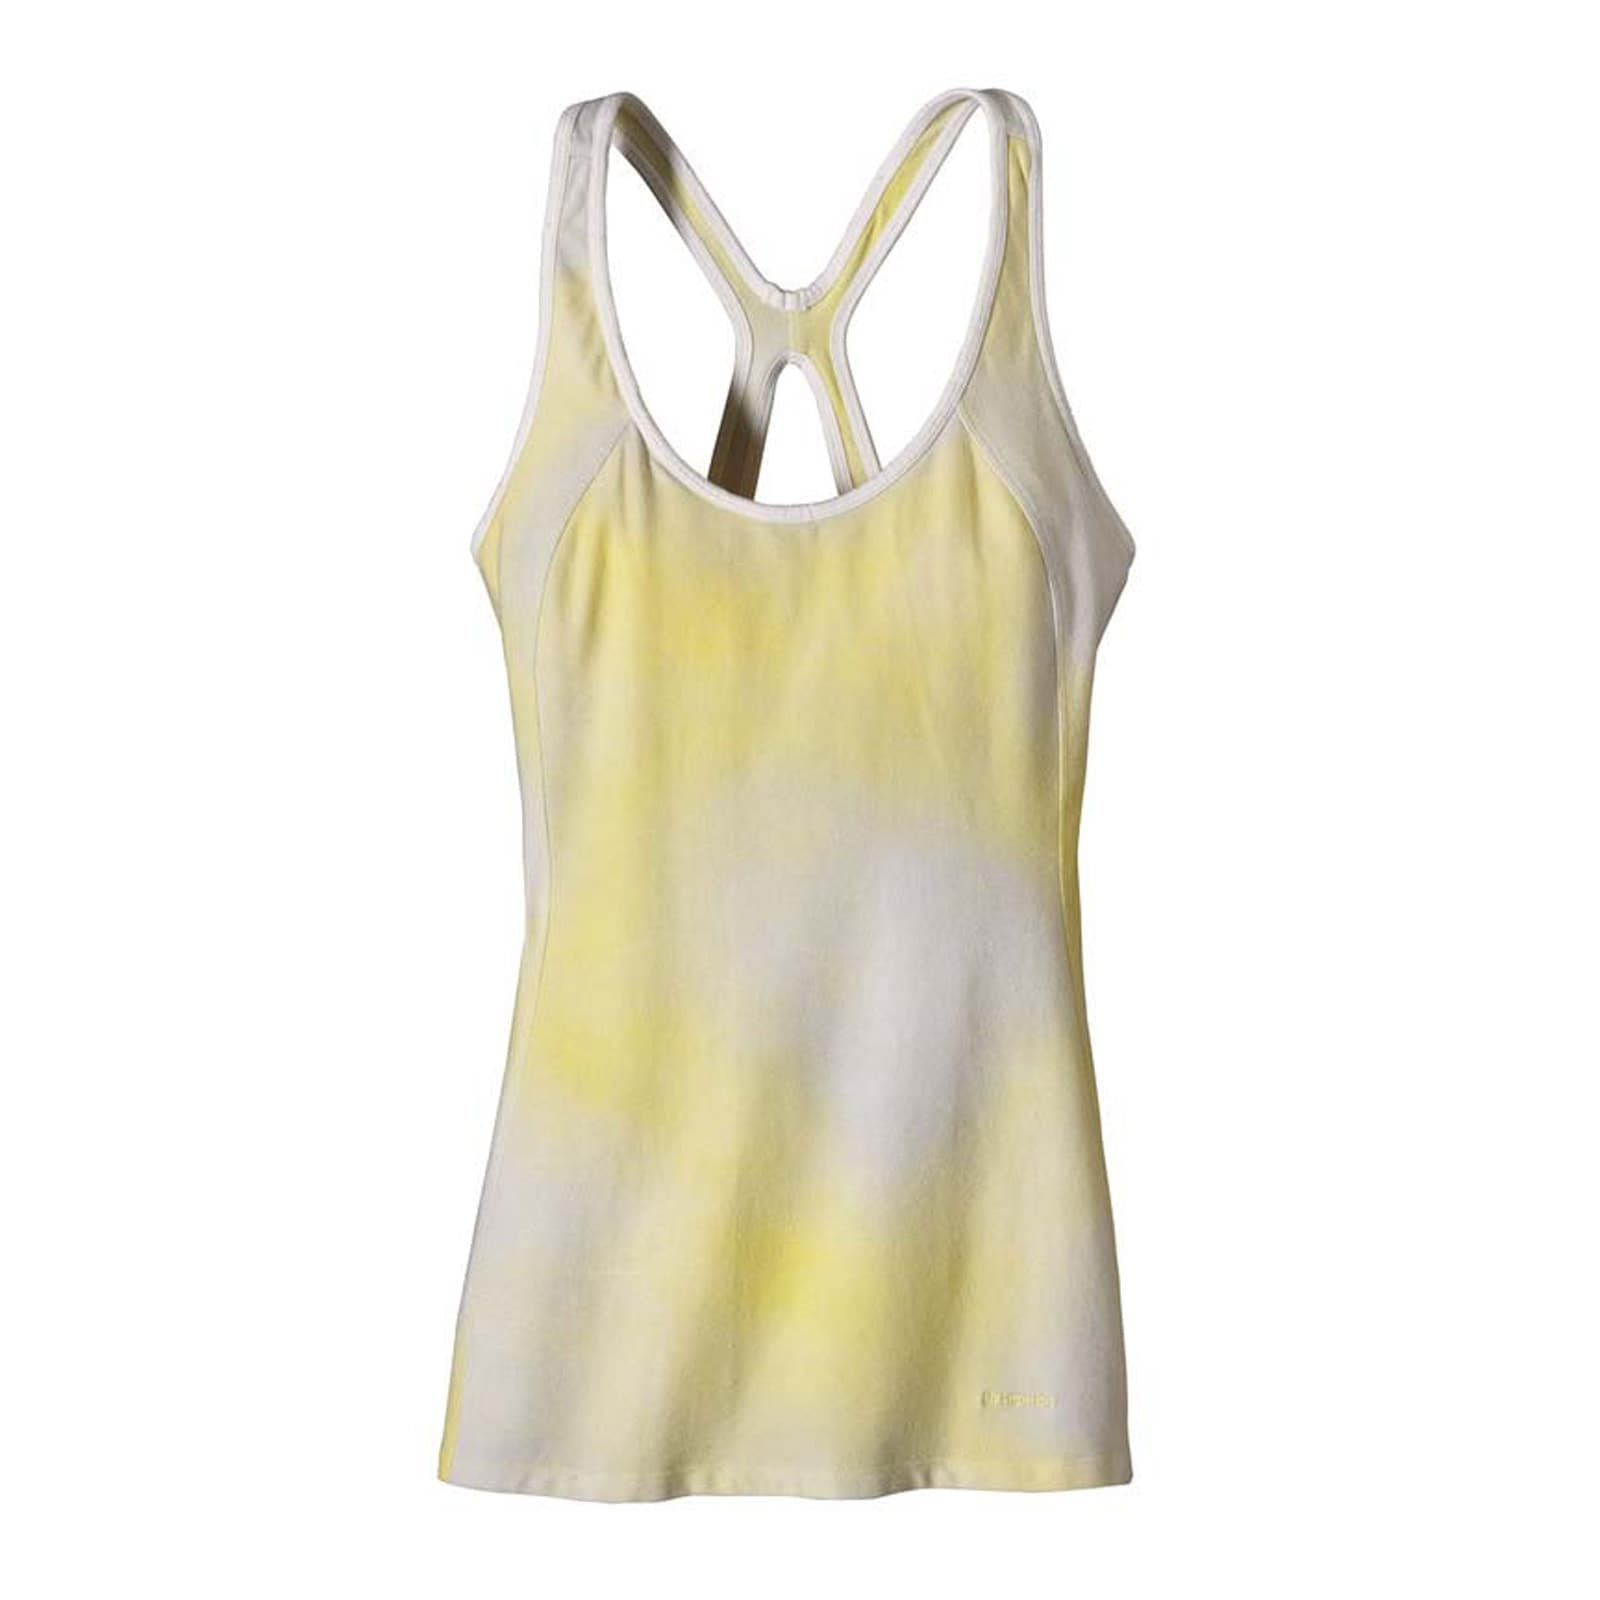 60a599506d0d4 Shop Patagonia NEW Yellow Women s Size Large L Bisect Tank Cami Top - Free  Shipping On Orders Over  45 - Overstock - 19676579